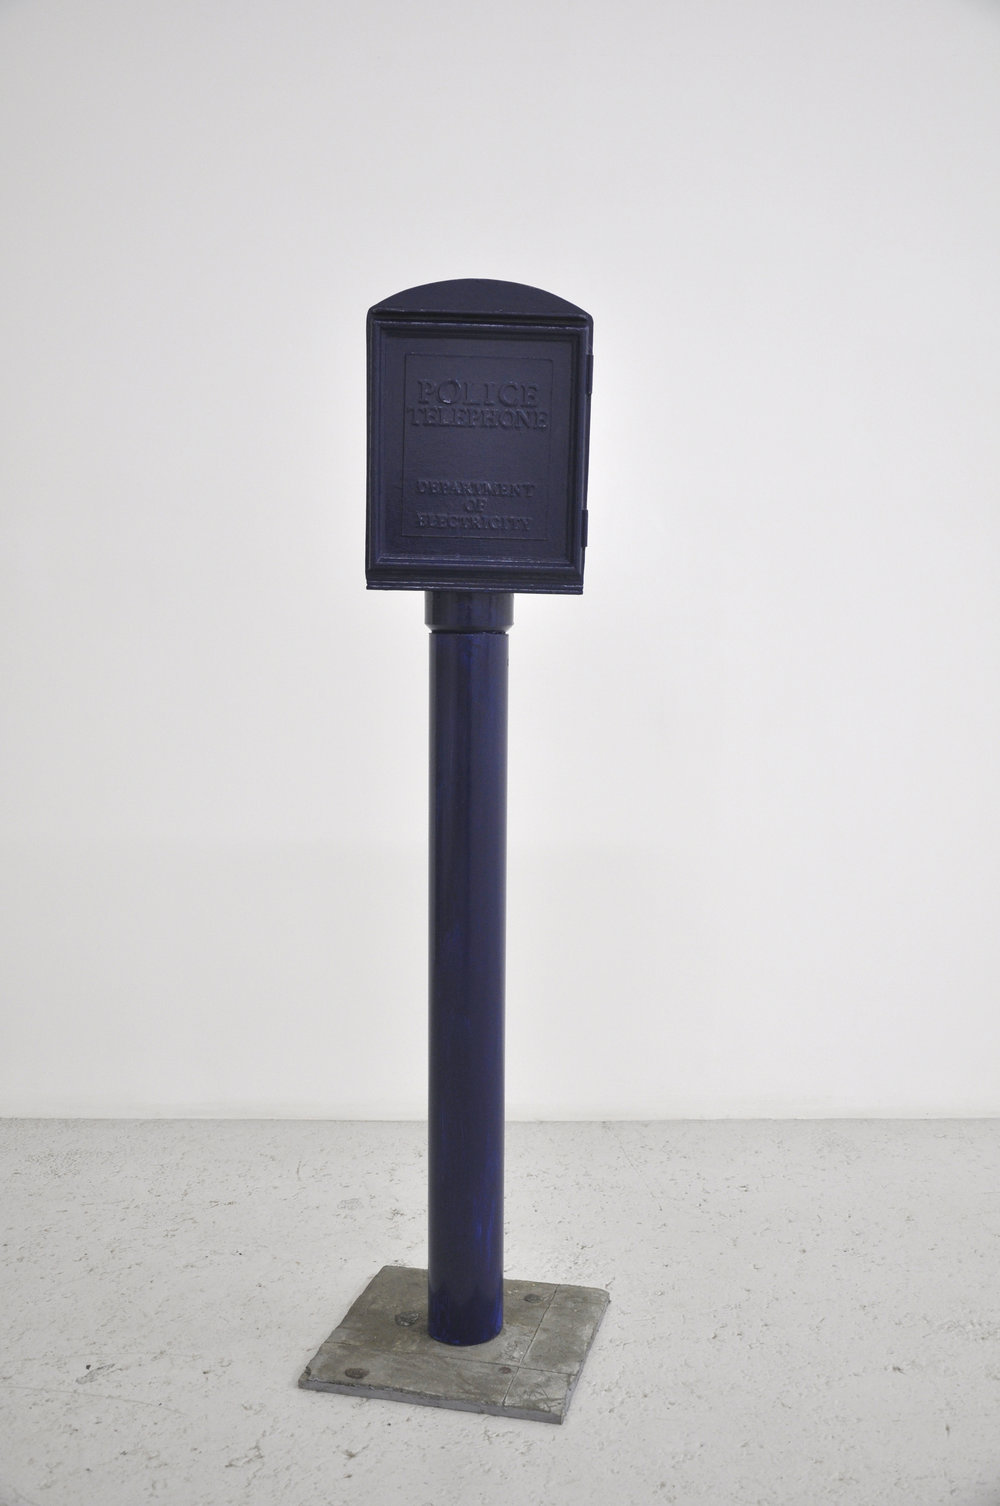 Malcolm Kenter, Police Box 1, 2019, Enamel on Wood, Foam, Plastic, Cement, Chewing Gum, 61 x 15 x 15in